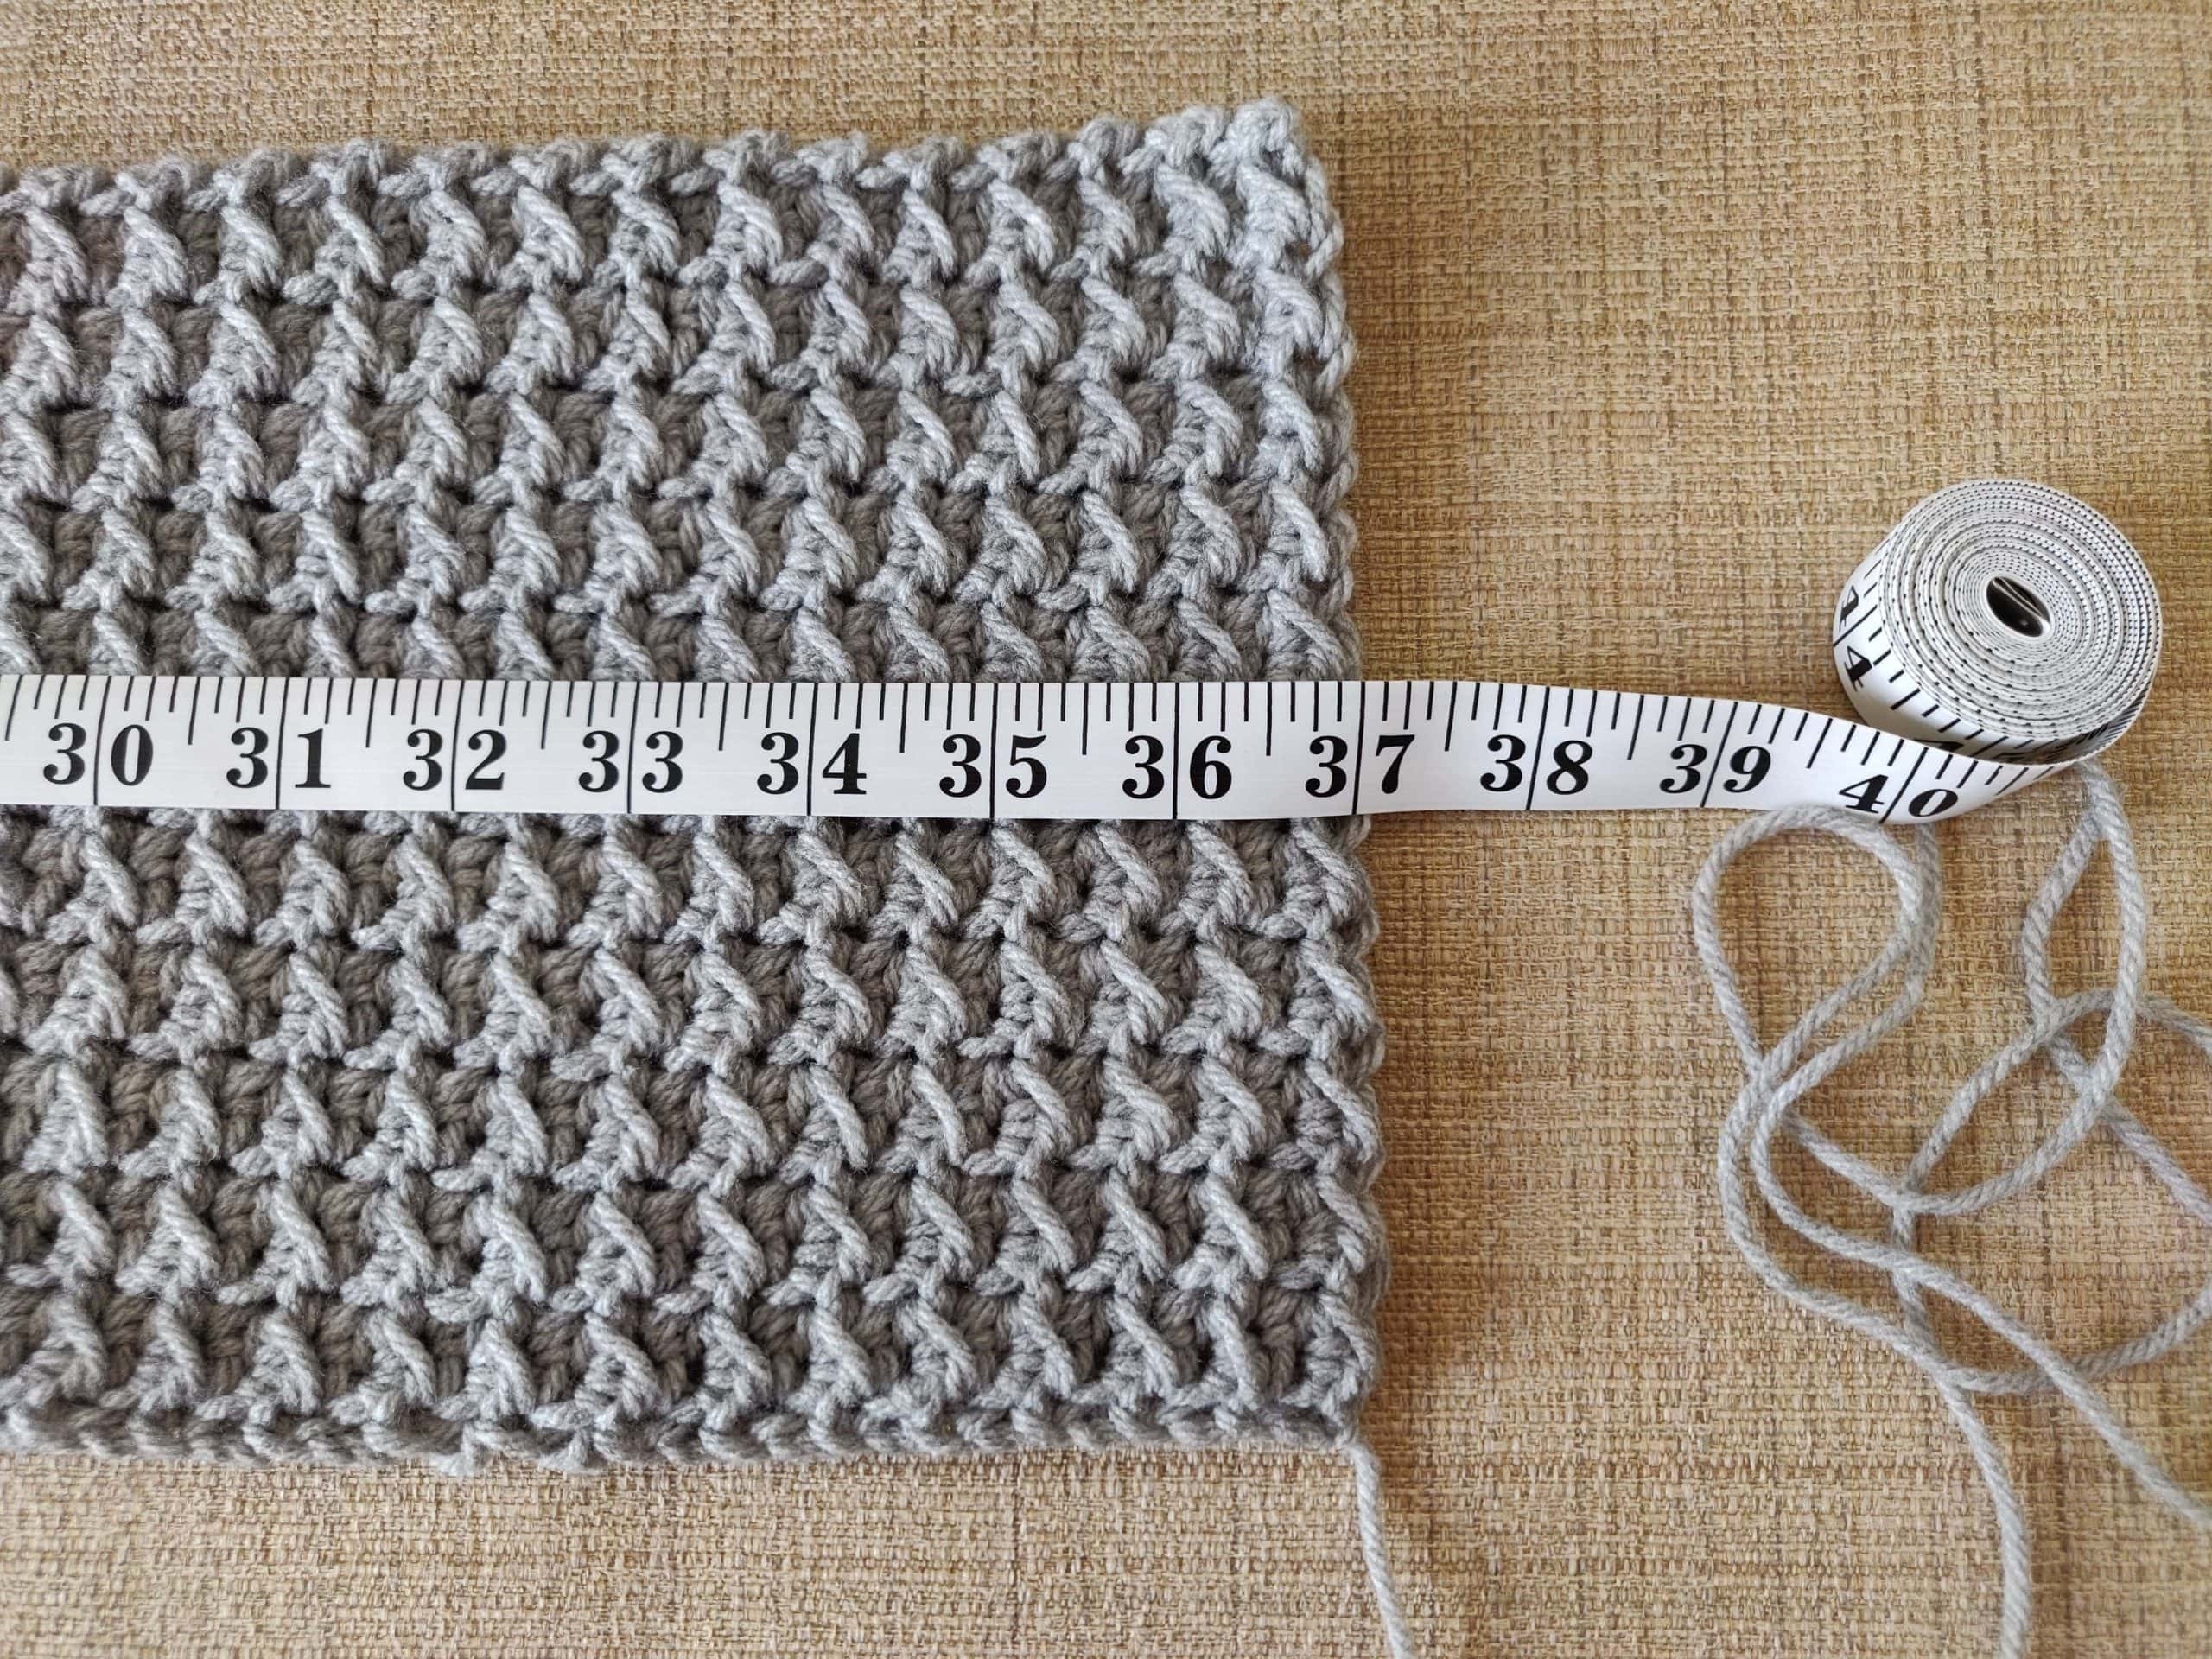 Measuring the length of the crochet scarf.